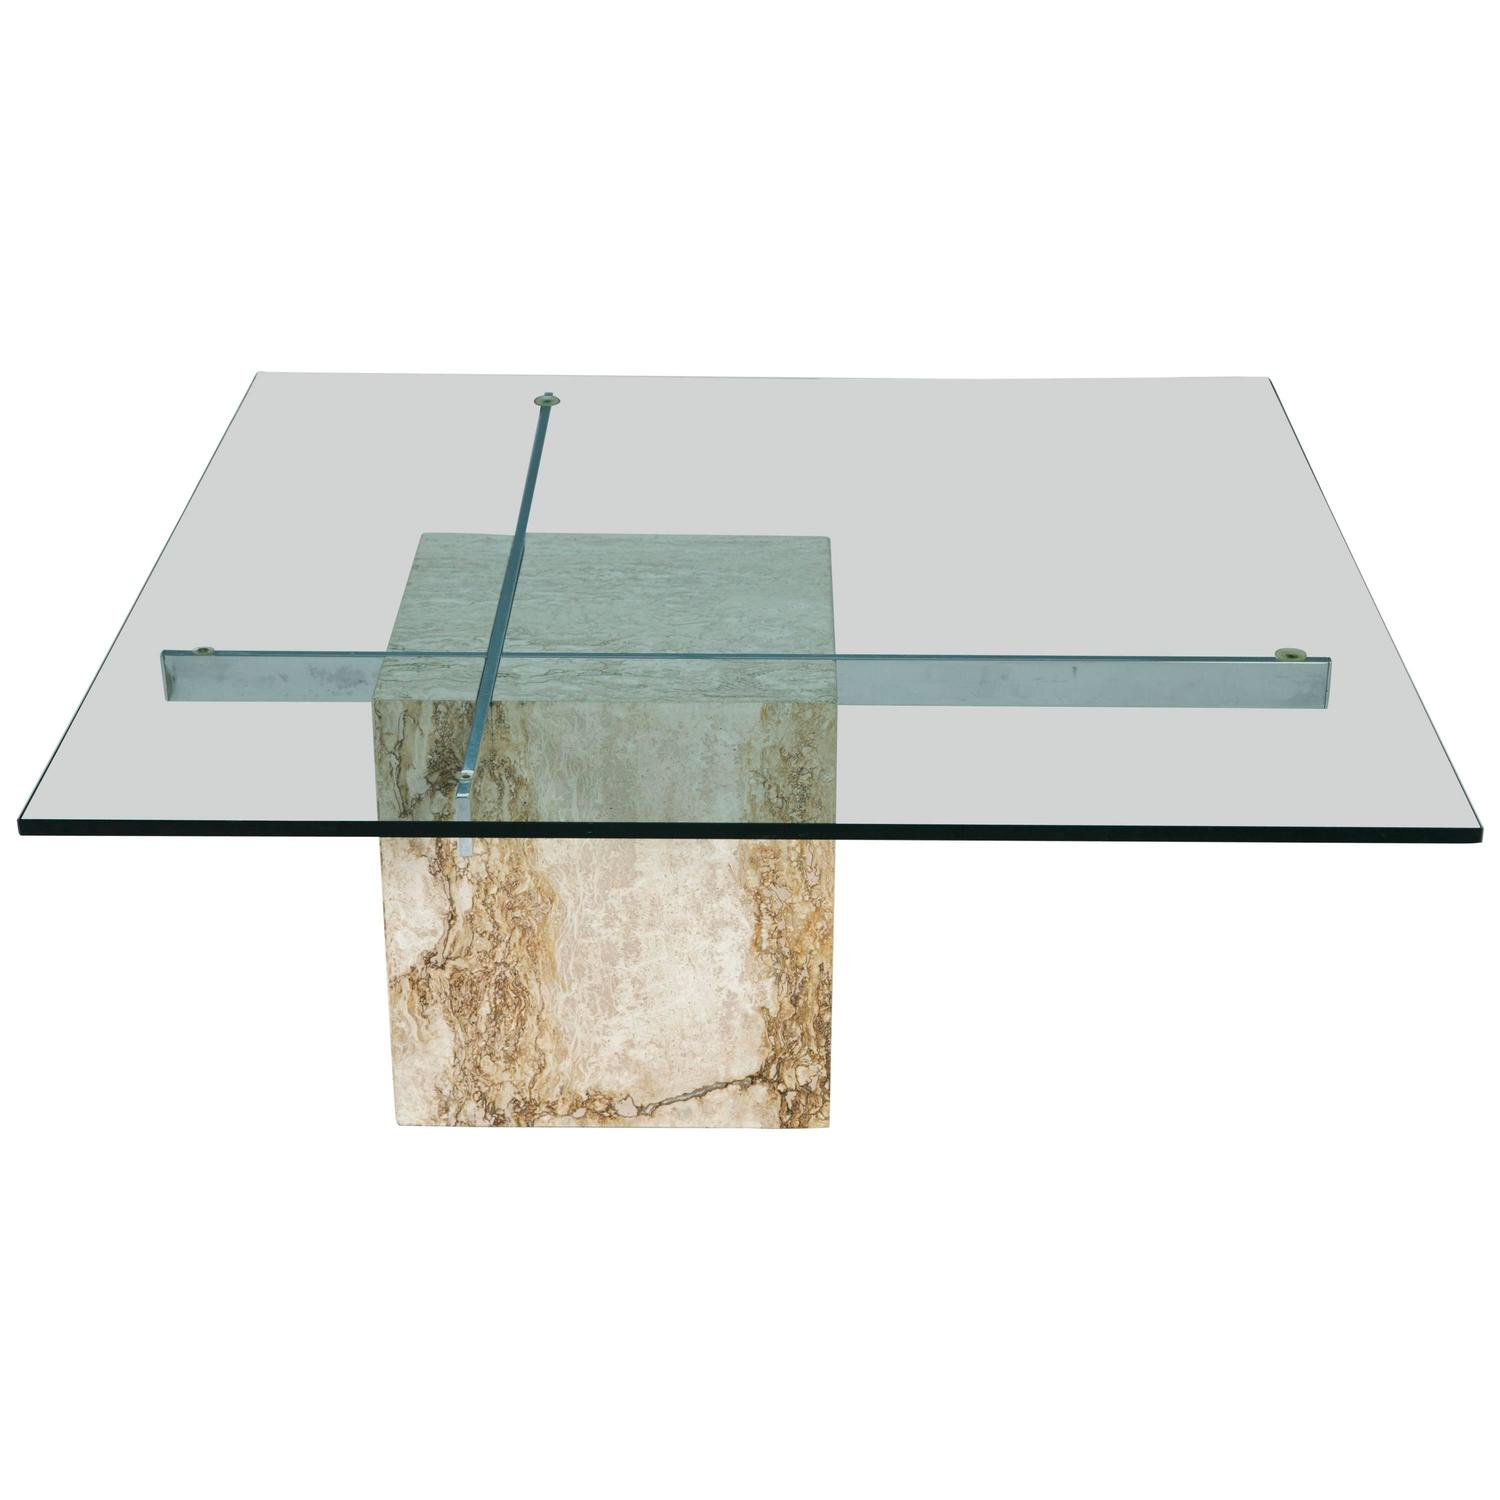 Artedi Travertine and Chrome Coffee Table at 1stdibs